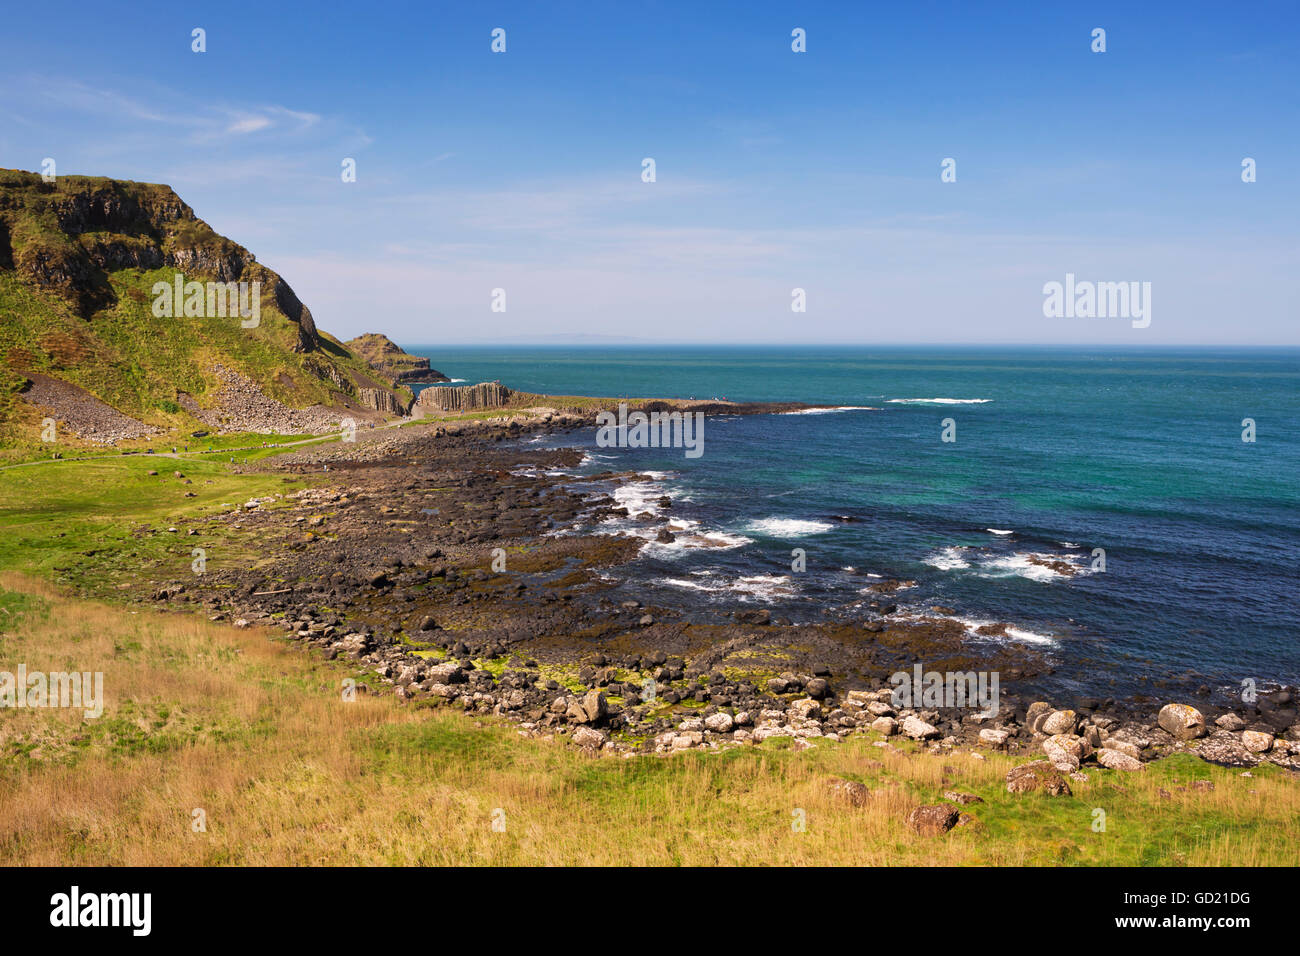 The rocky coast at the Giant's Causeway in Northern Ireland on a bright and sunny day. - Stock Image